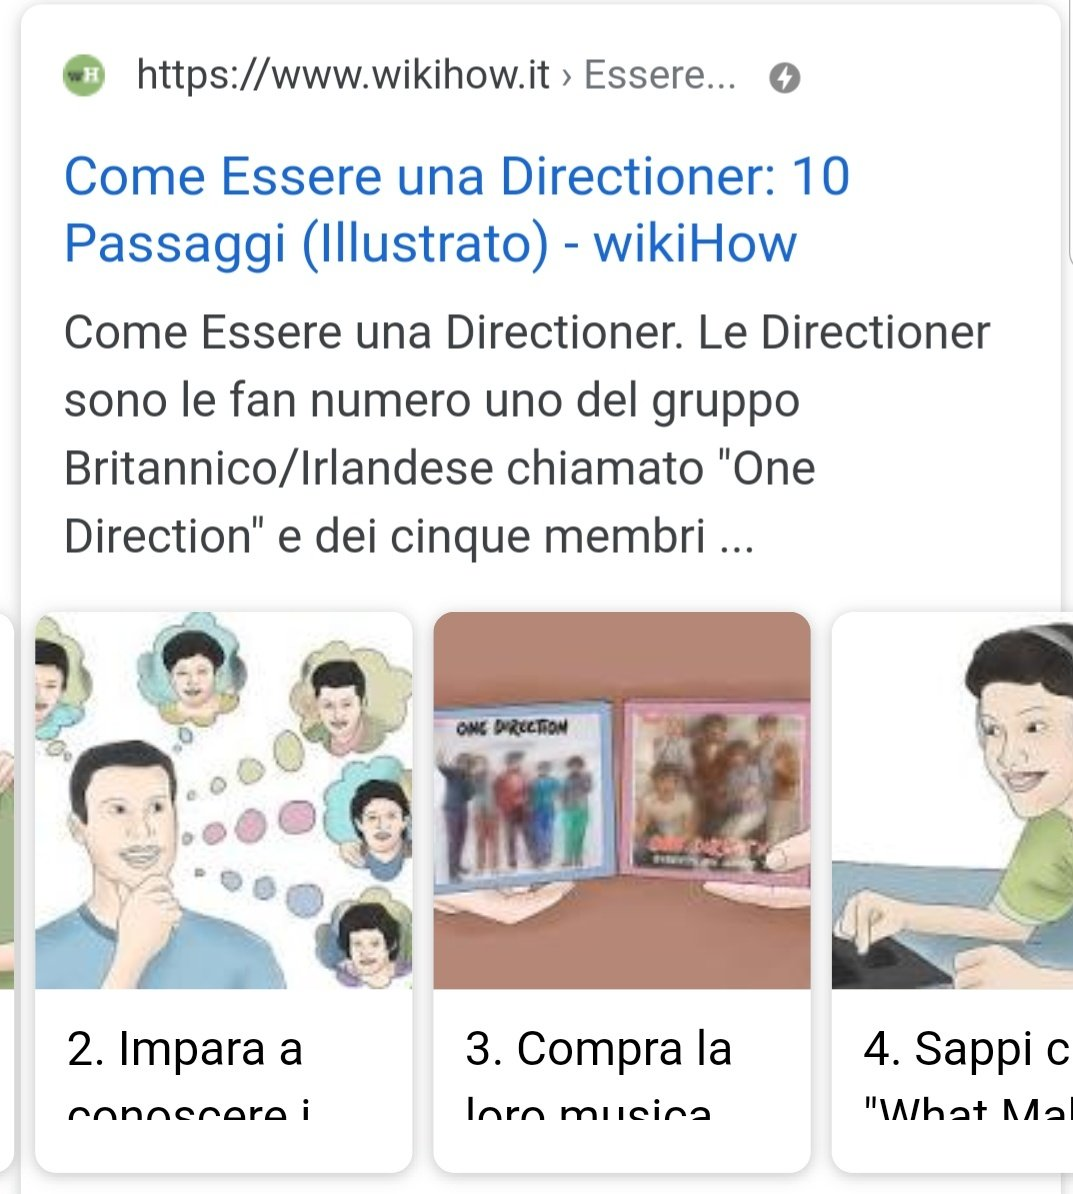 How to be a directioner: 10 steps (ILLUSTRATED)pic.twitter.com/2V7qJKqBHh